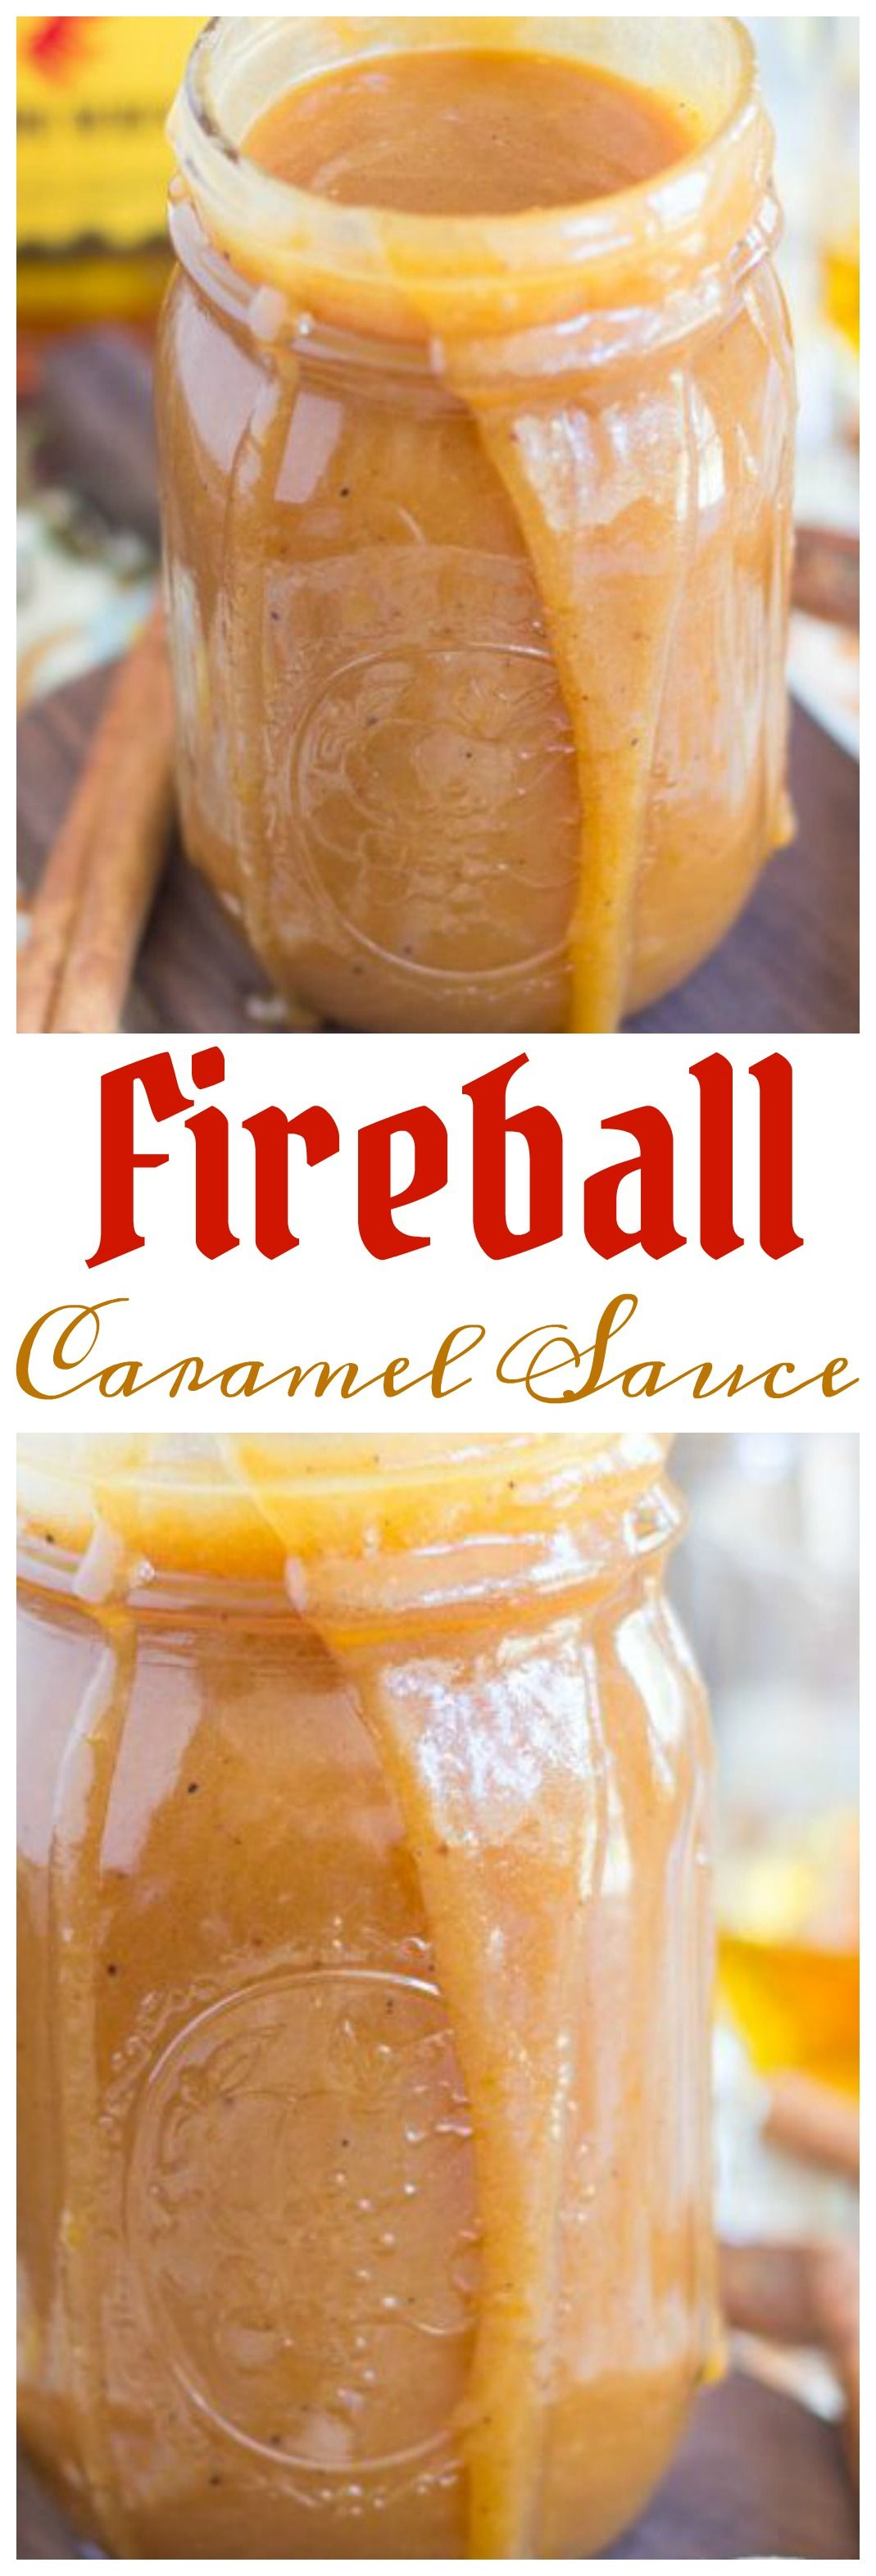 Fireball whiskey caramel sauce pin 2 recipes to try pinterest homemade from scratch perfect sweet caramel sauce spiked with fireball cinnamon whiskey forumfinder Images